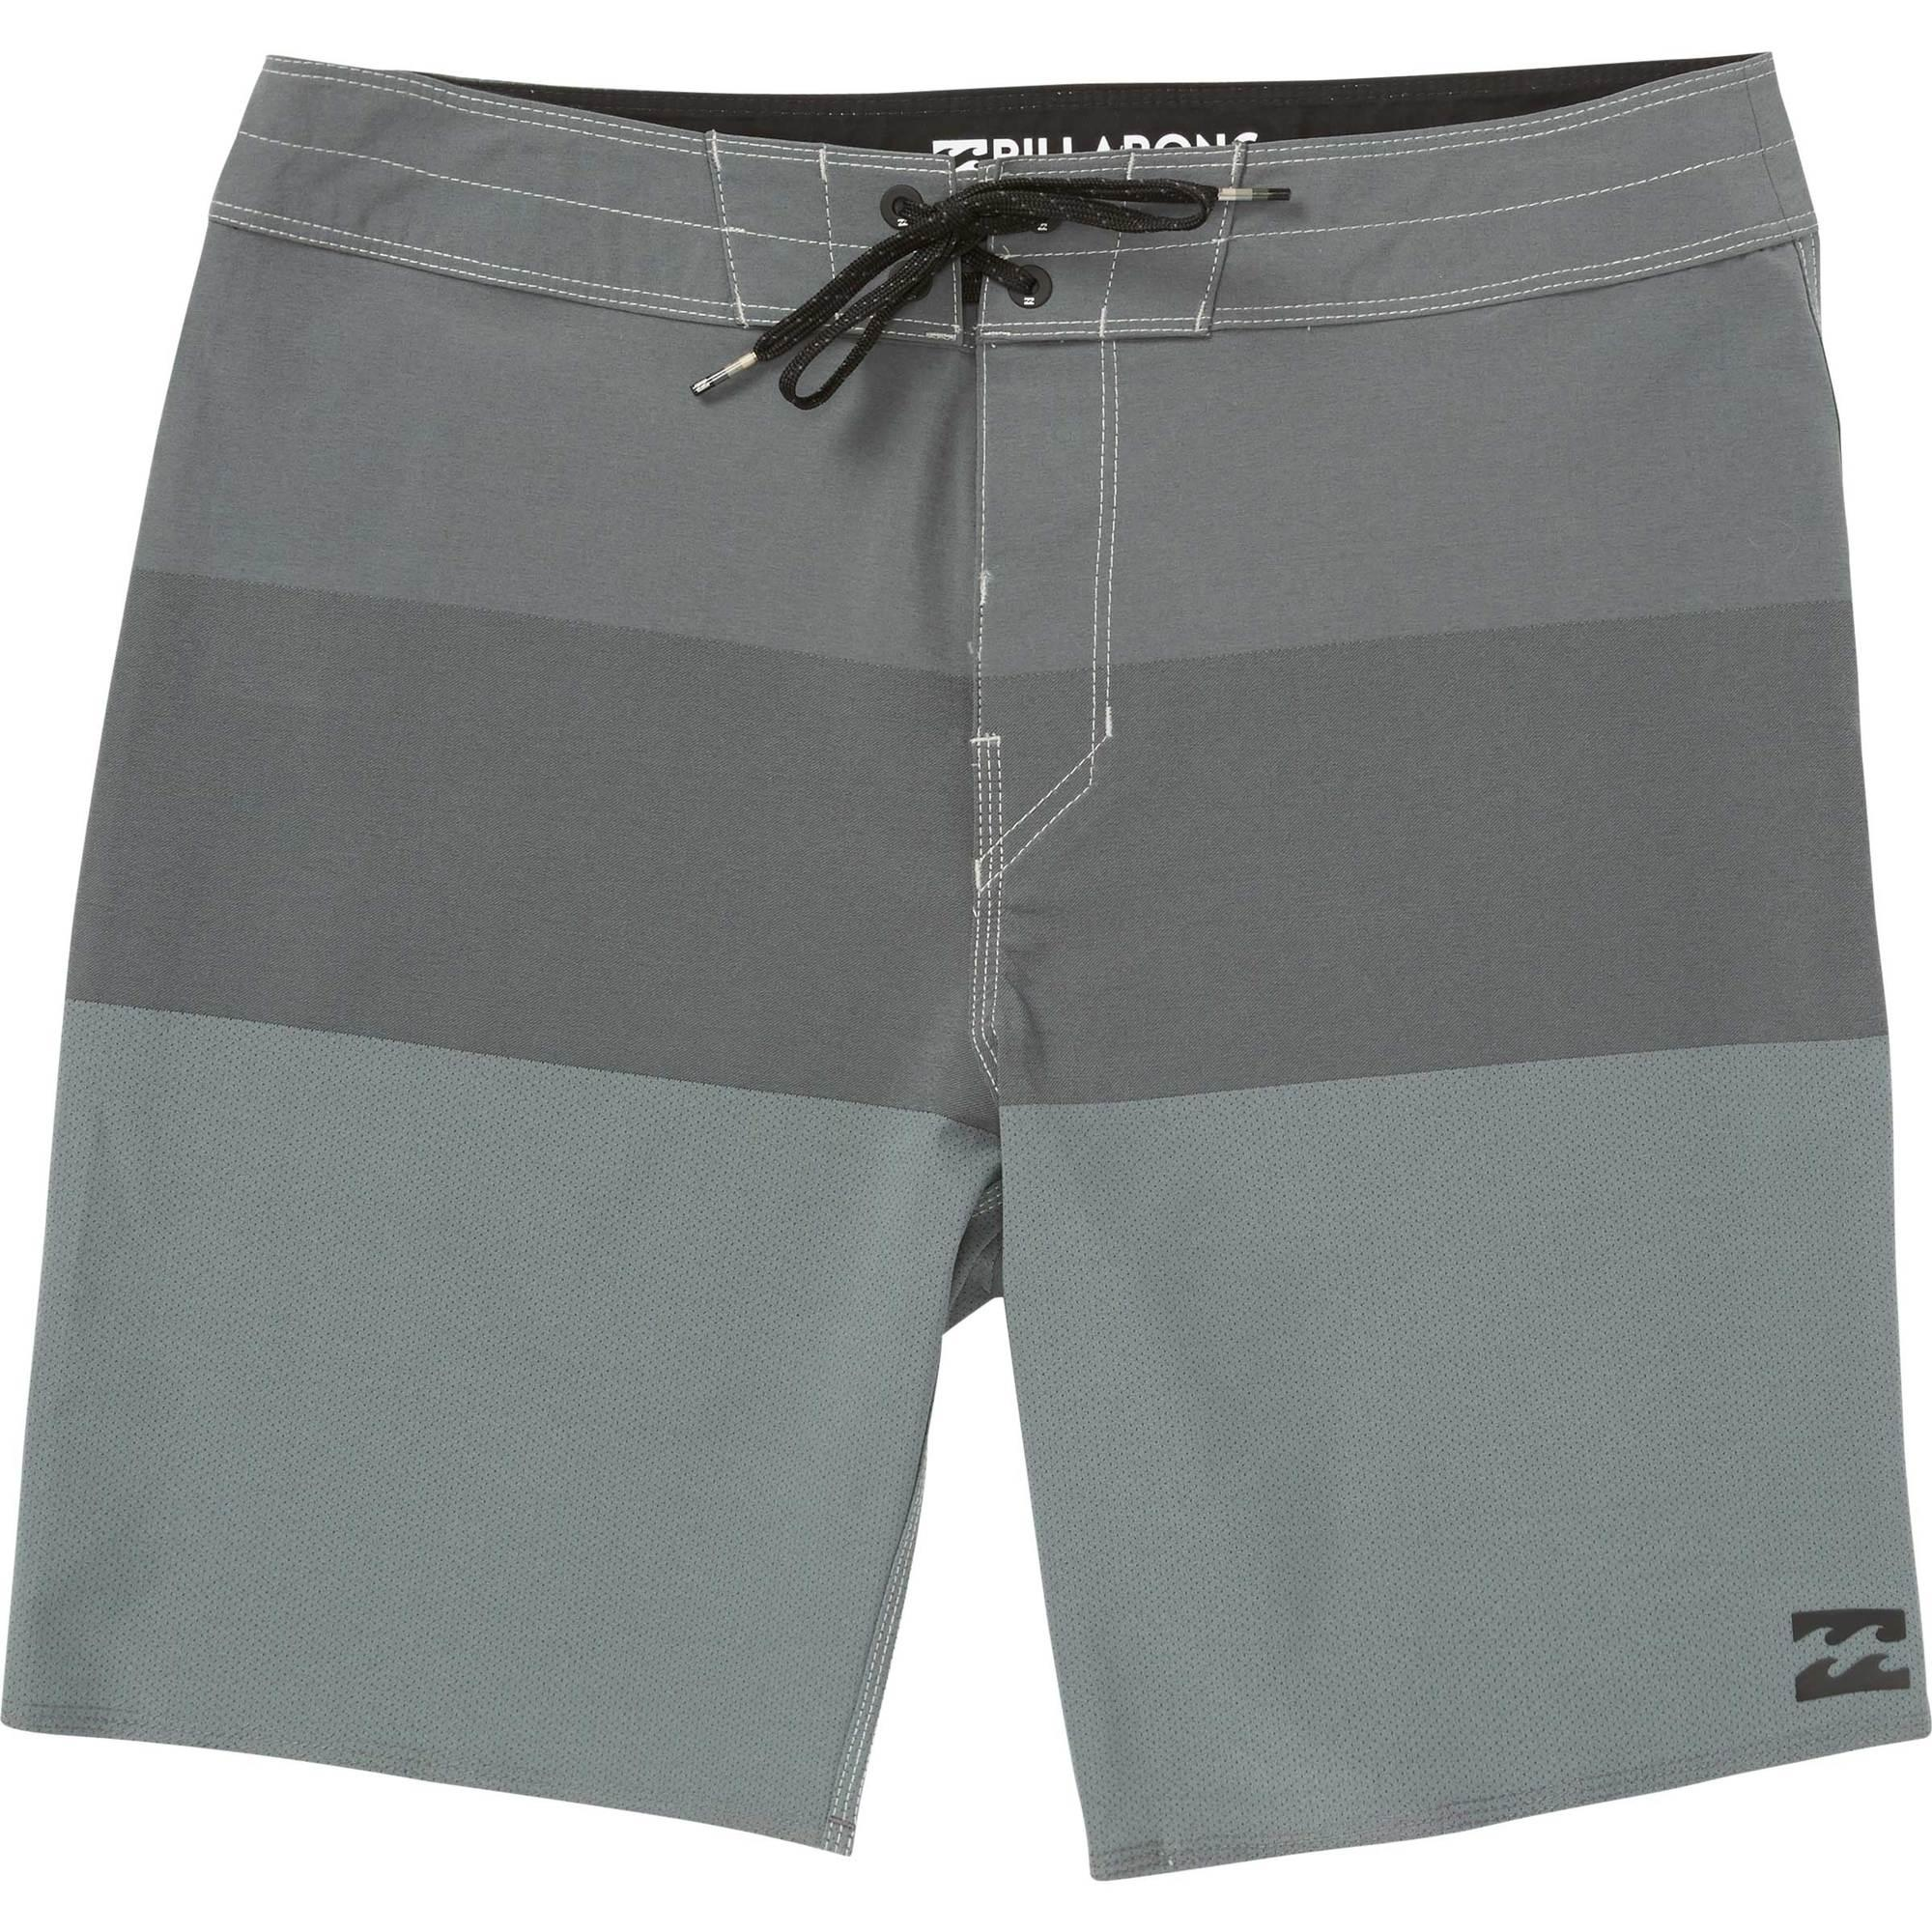 0ad605088a Billabong - Buy Billabong at Best Price in Singapore | www.lazada.sg